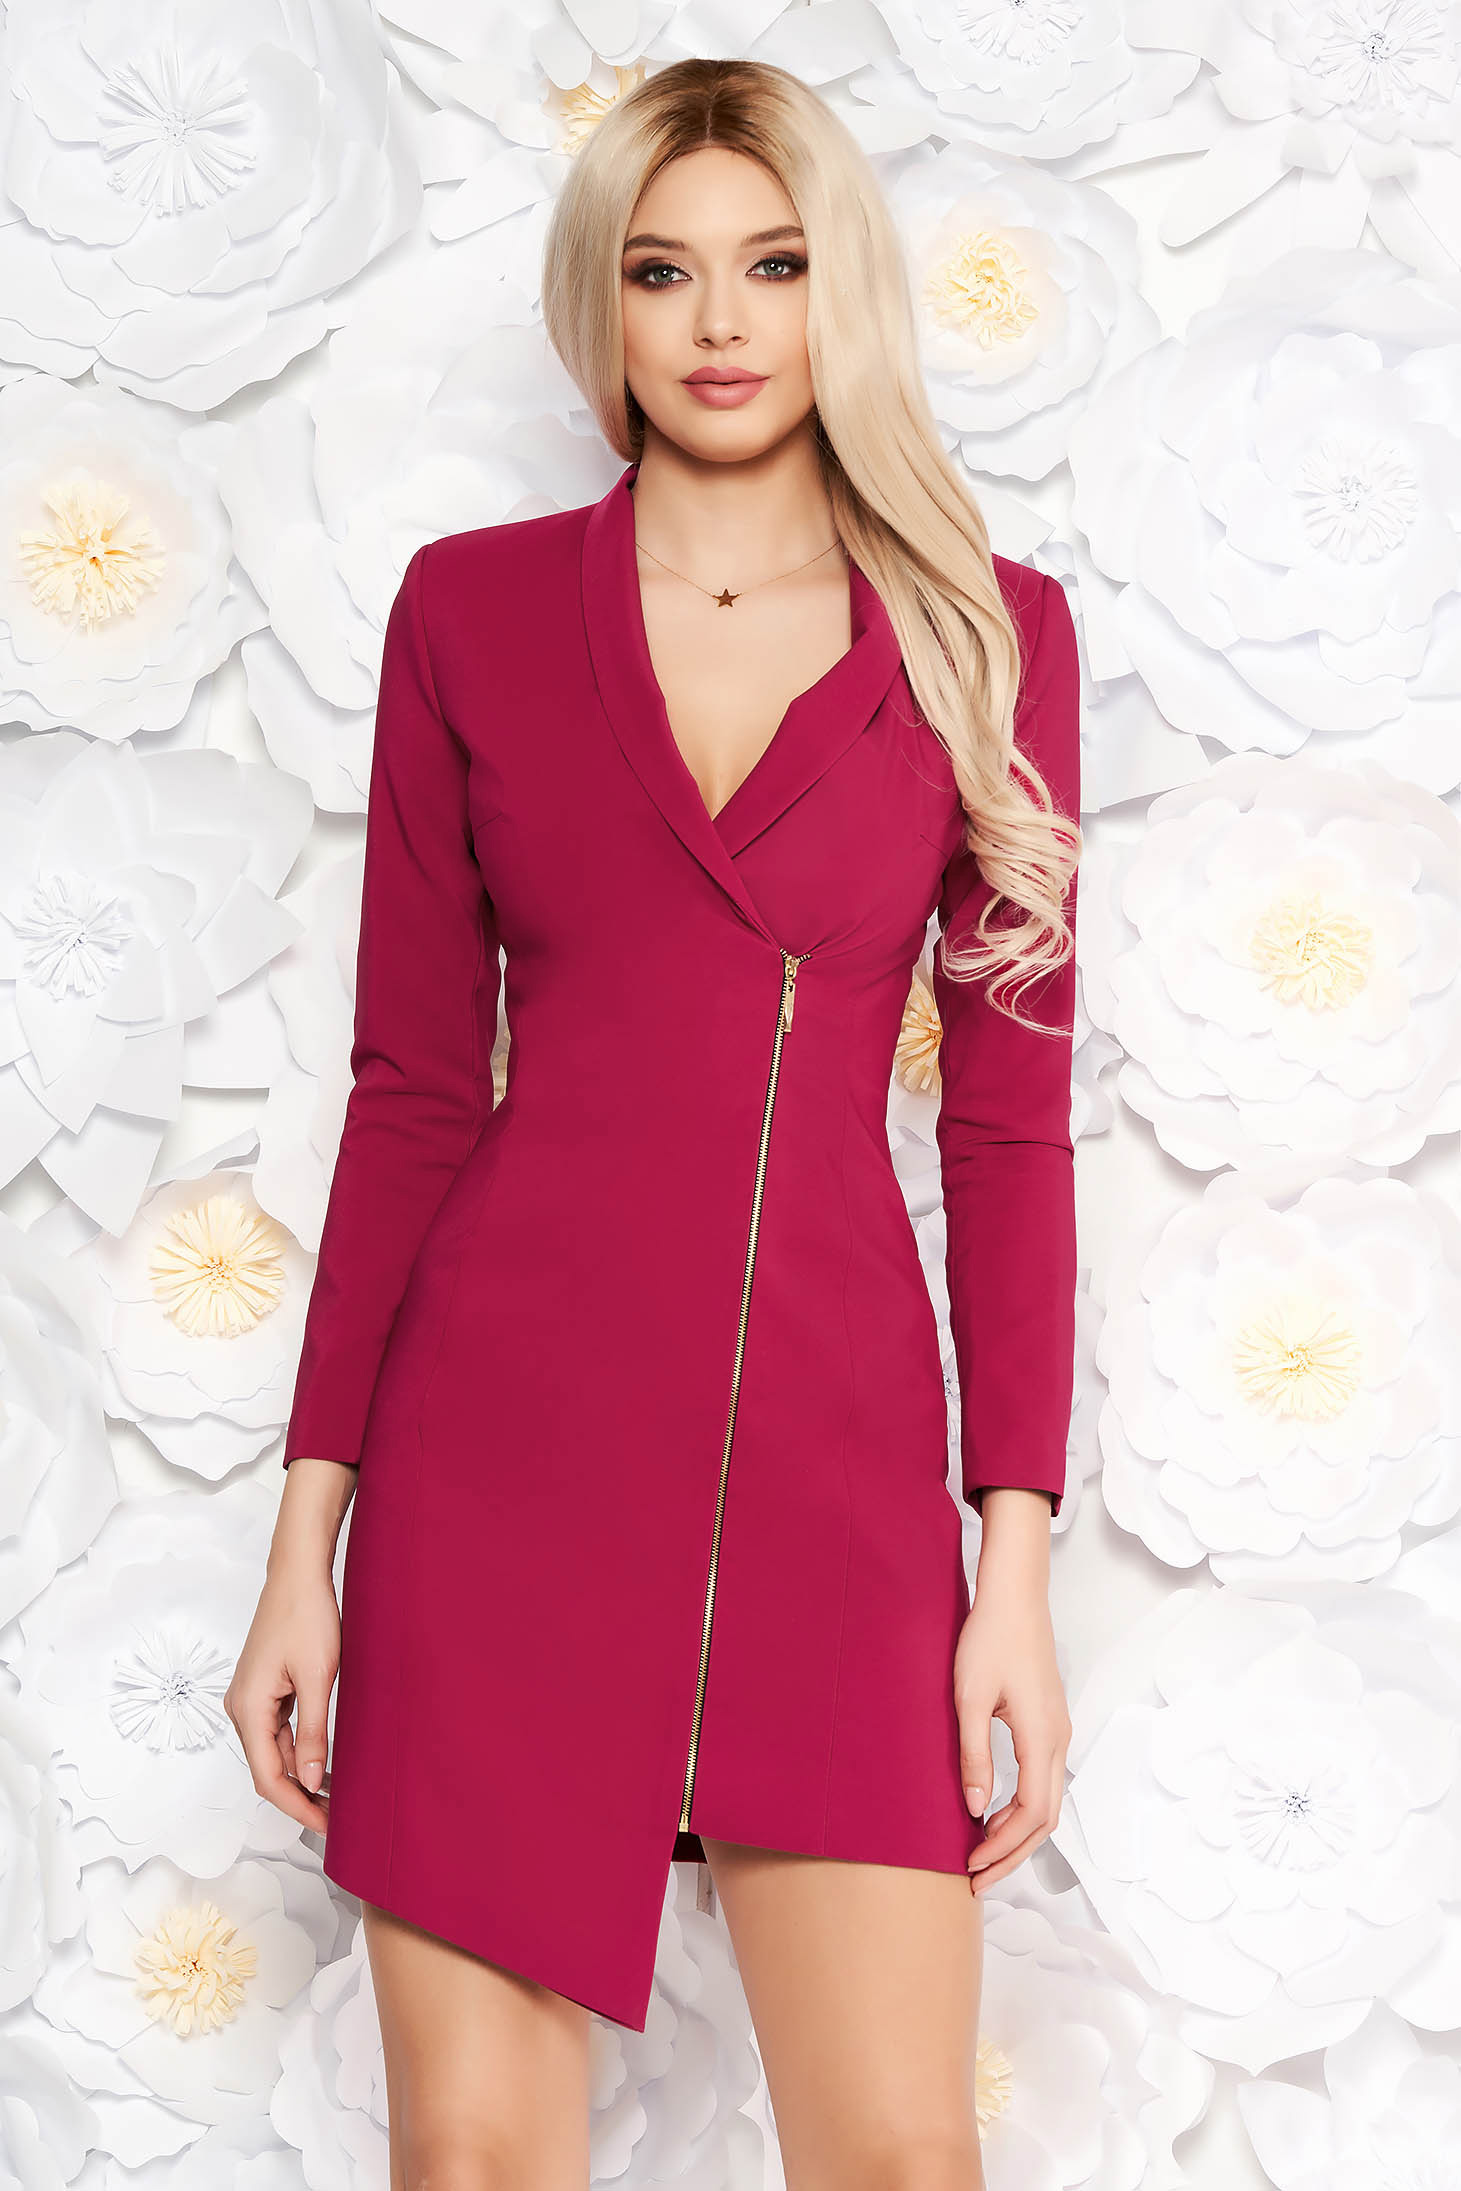 LaDonna fuchsia elegant blazer type dress from non elastic fabric with inside lining long sleeved